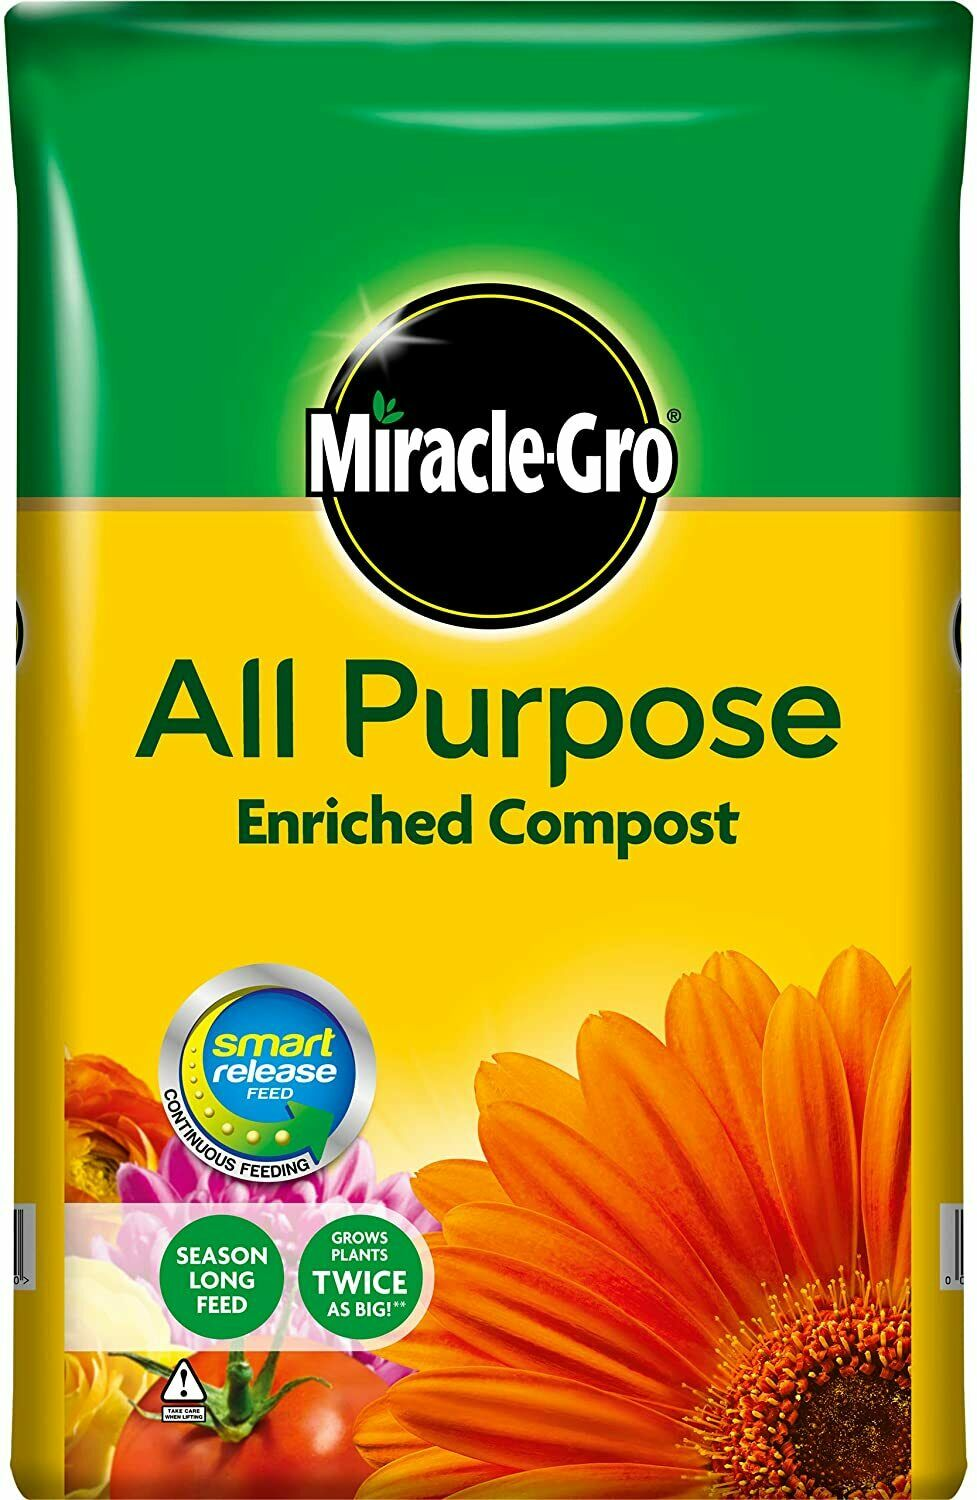 Miracle-Gro All Purpose Enriched Compost Soil Potted Garden Flower 50 liters!,UK